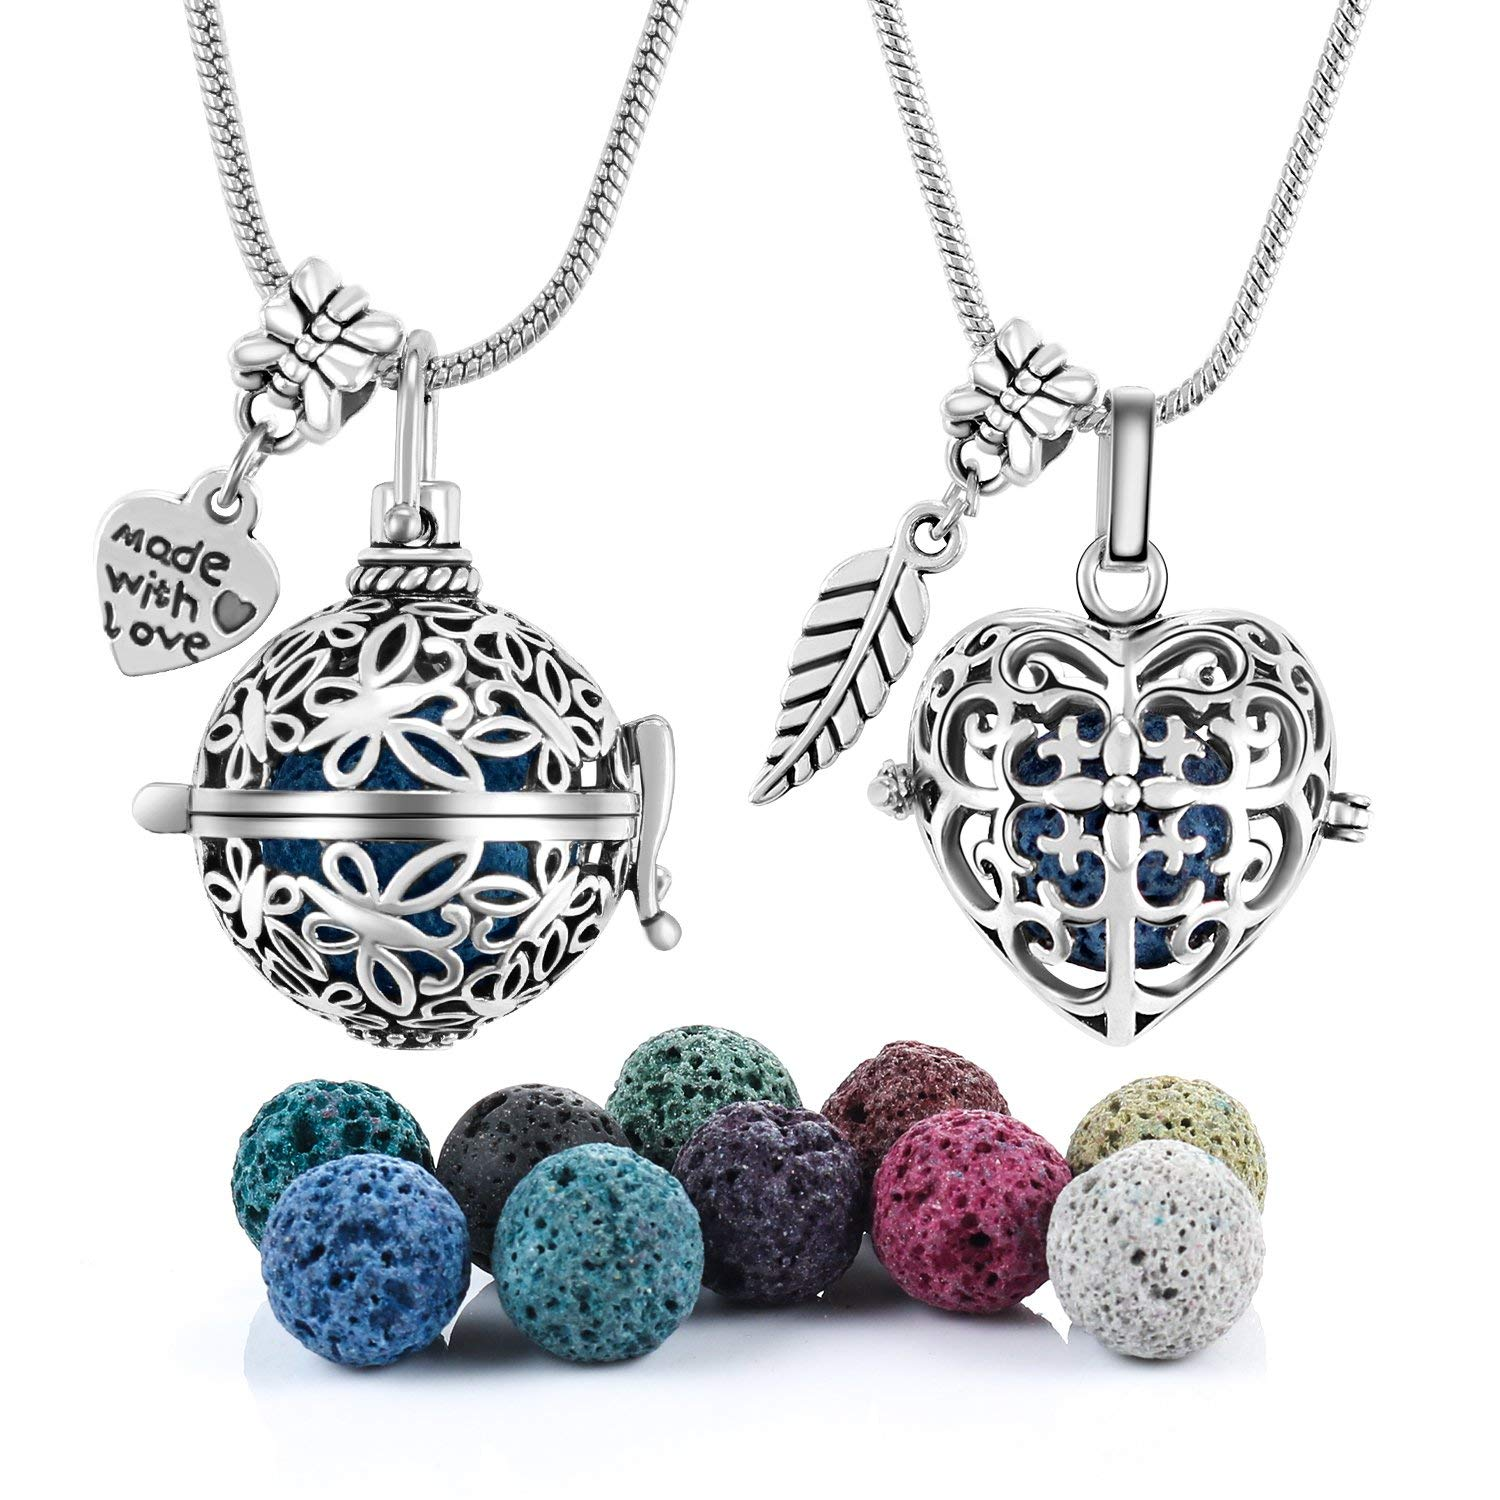 2 PCS Antique Silver Aromatherapy Essential Oil Diffuser Locket Necklace Pendant, Round/Heart Cage Locket Bulk with 10 Lava Stone Rock Beads Balls Set for Necklace Jewelry